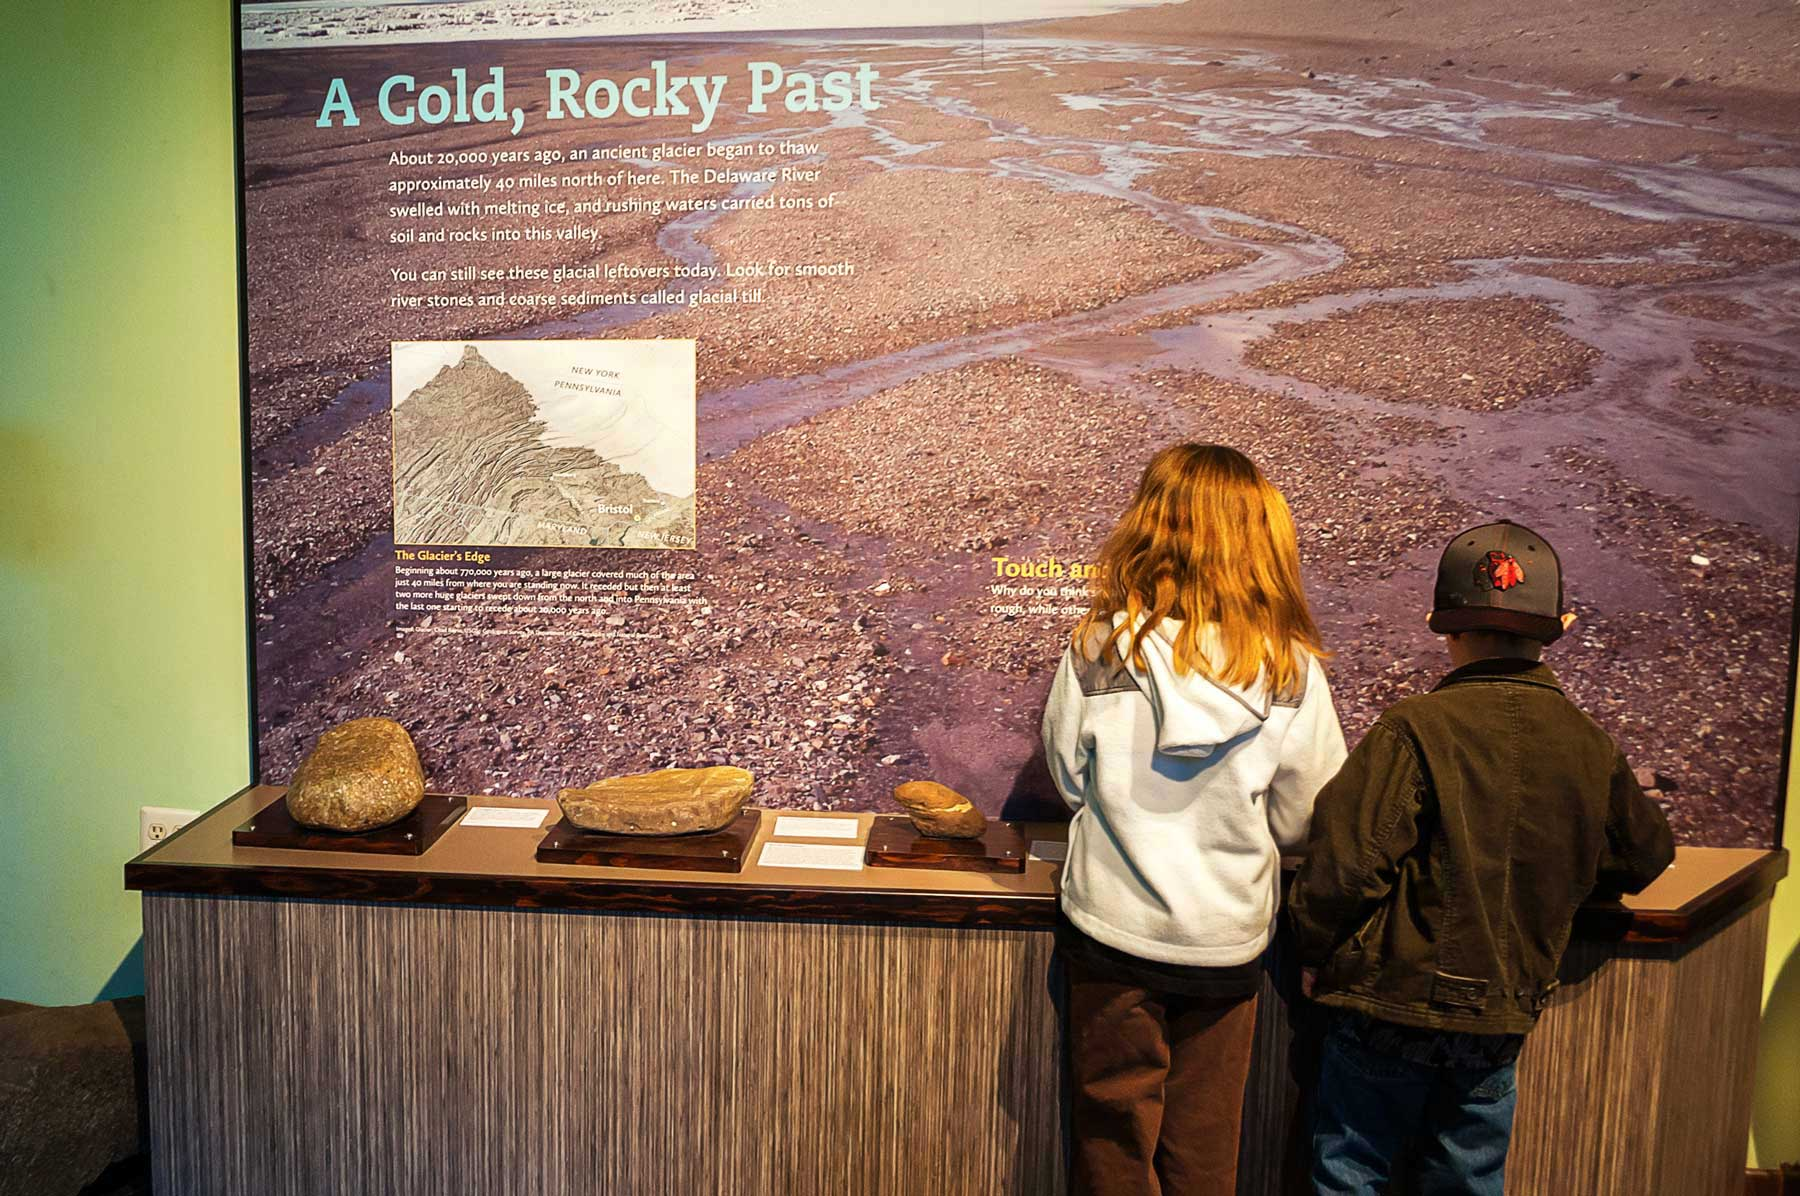 Silver Lake came to be with the receding of the glaciers. Different rock types are identified in a tactile exhibit.